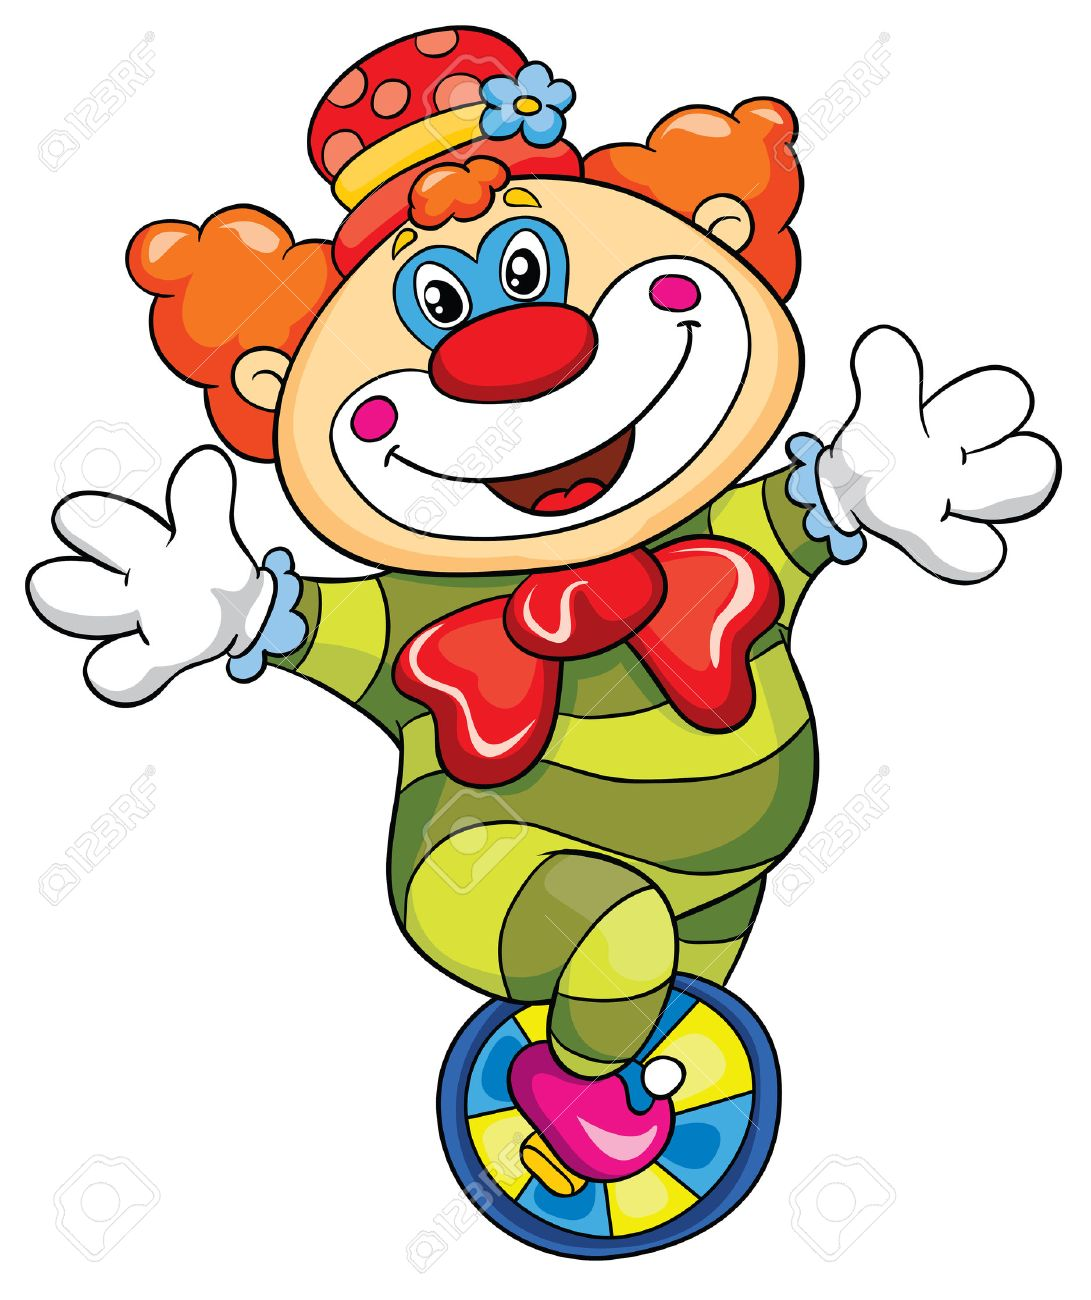 Funny clown on a white background, vector illustration - 25382813